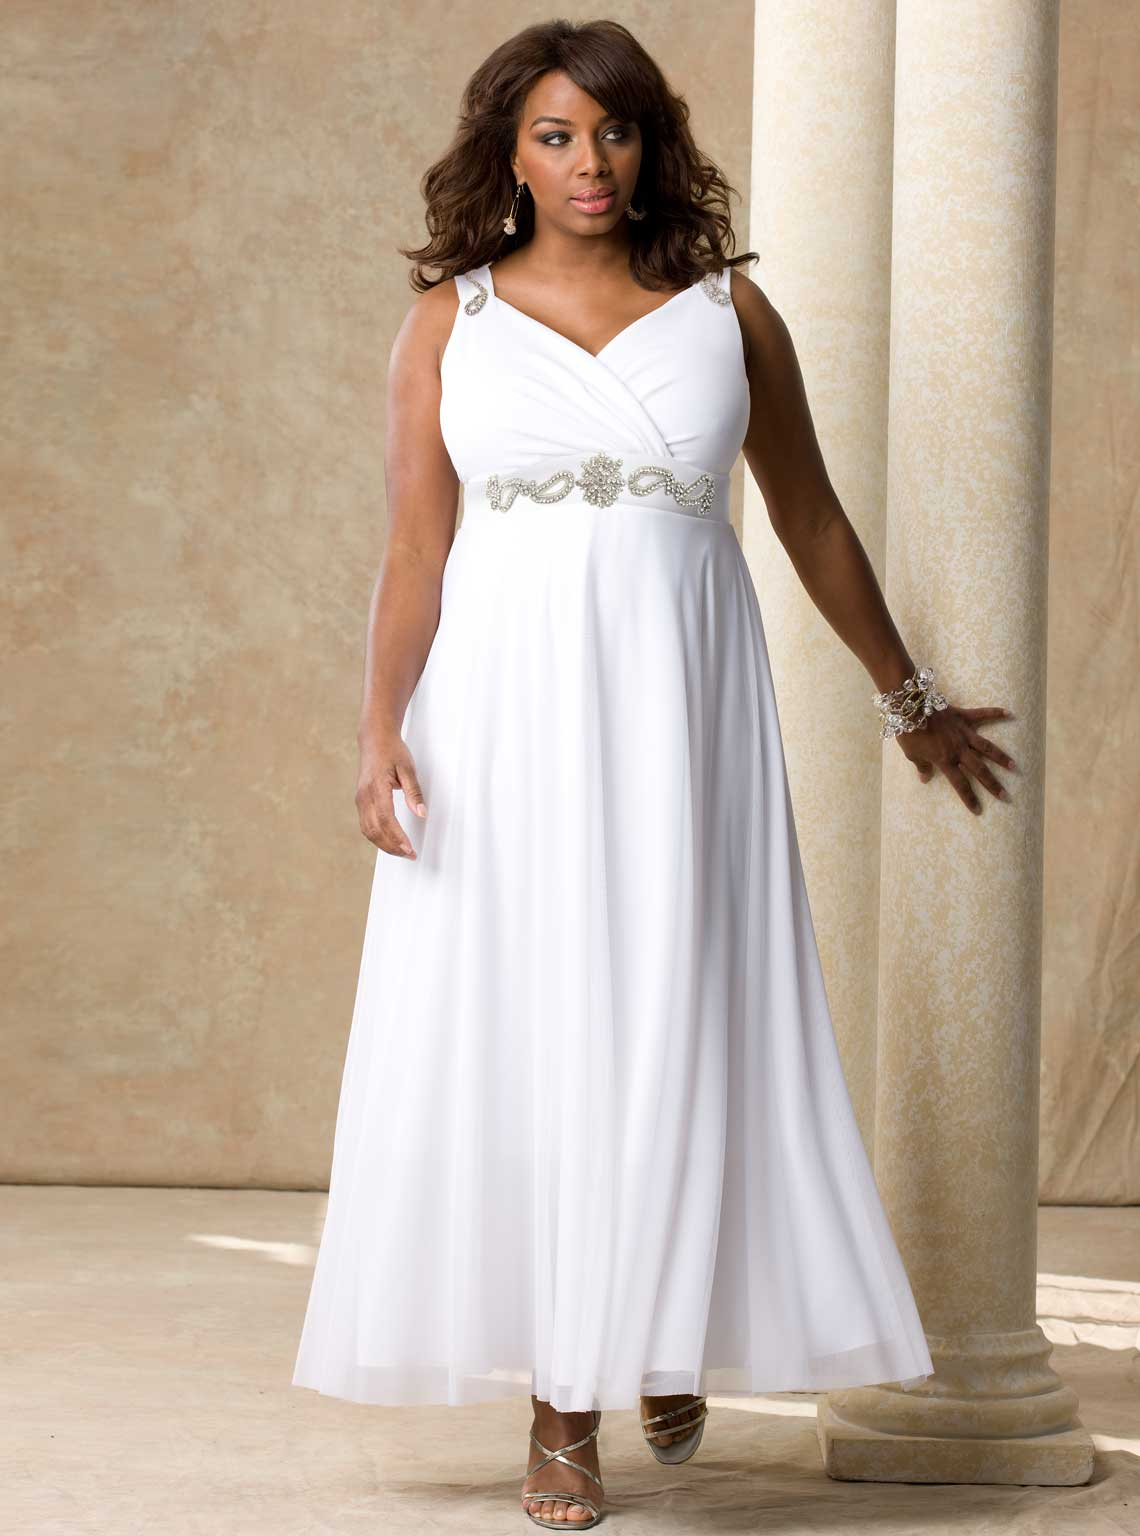 pictures of plus size wedding dresses photo - 1